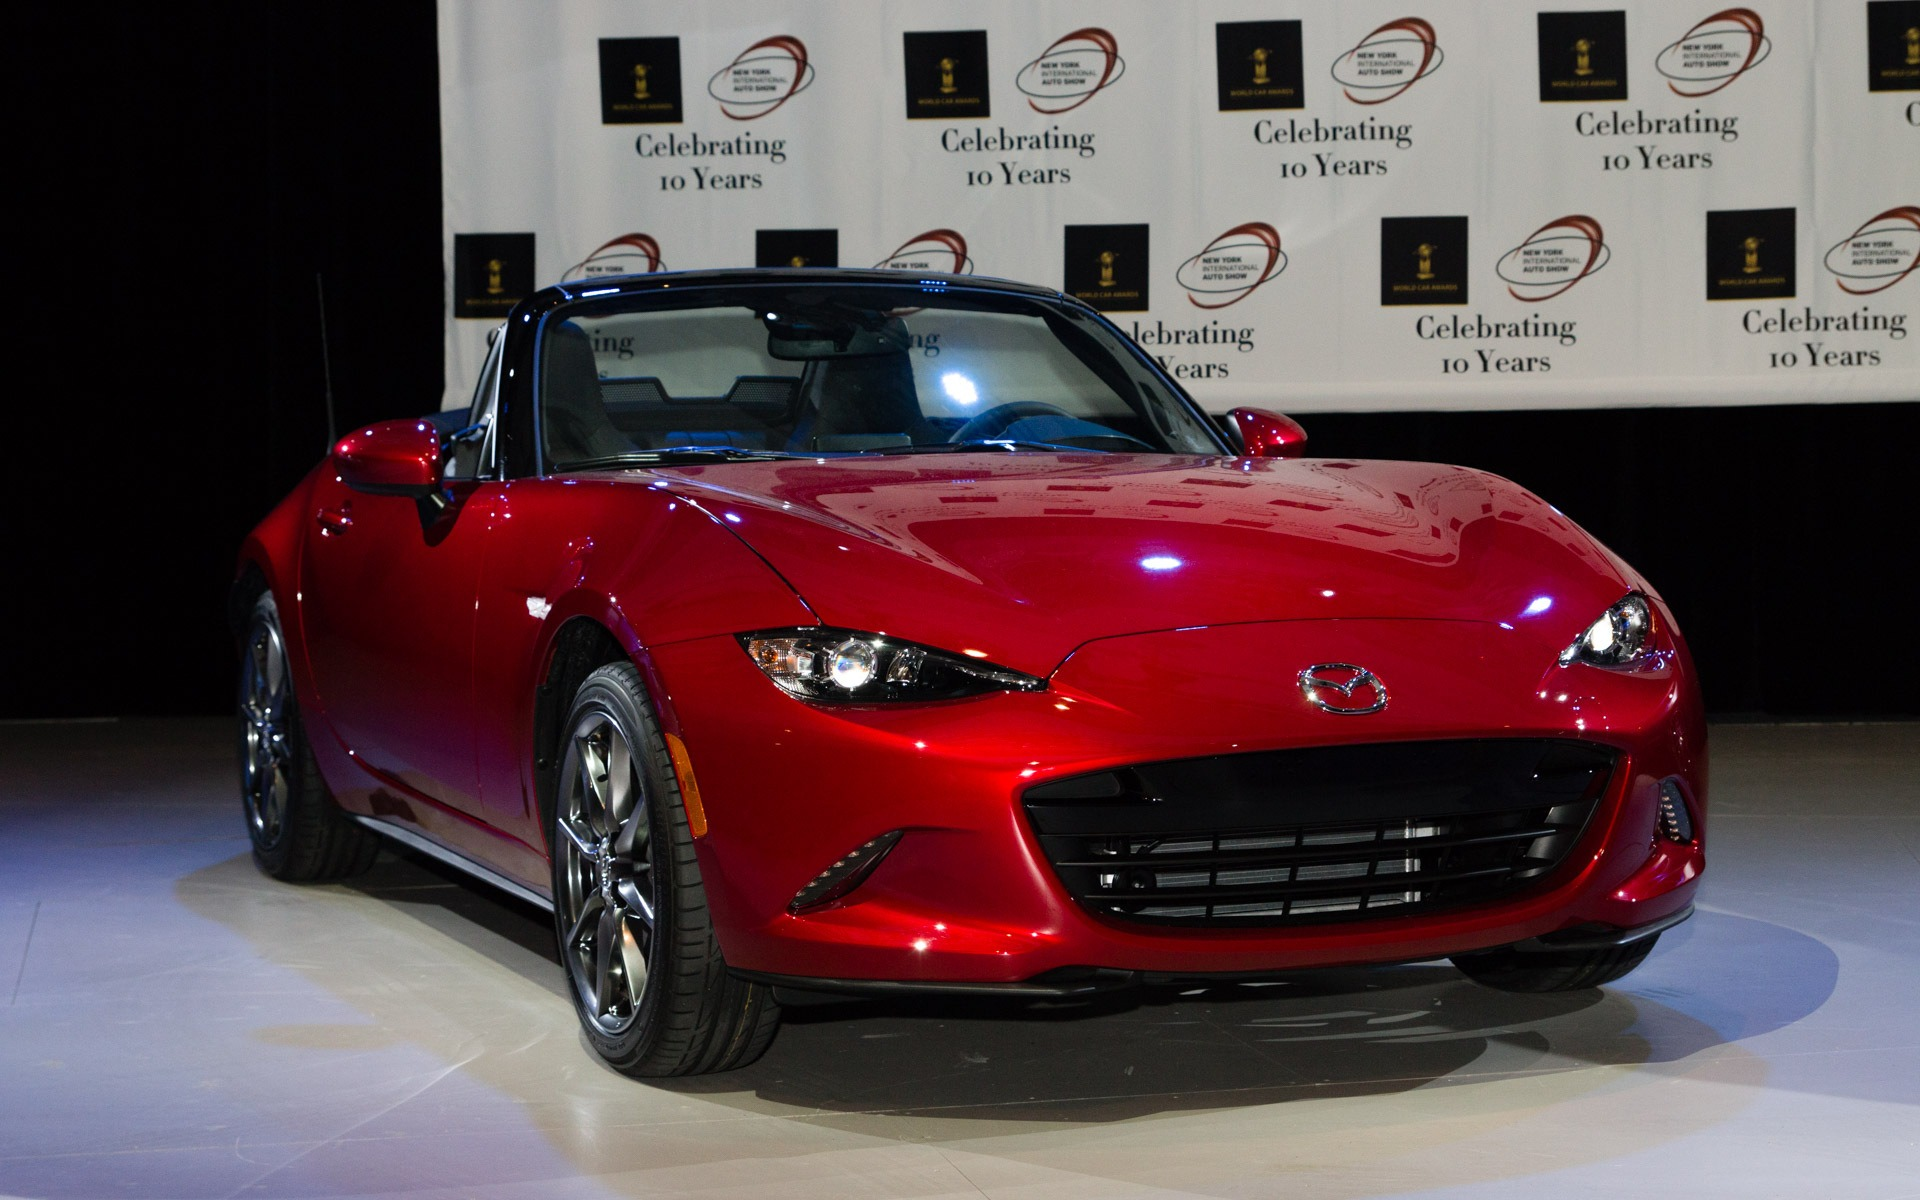 prix mondiaux de l ann e 2016 la mazda mx 5 reine du monde guide auto. Black Bedroom Furniture Sets. Home Design Ideas